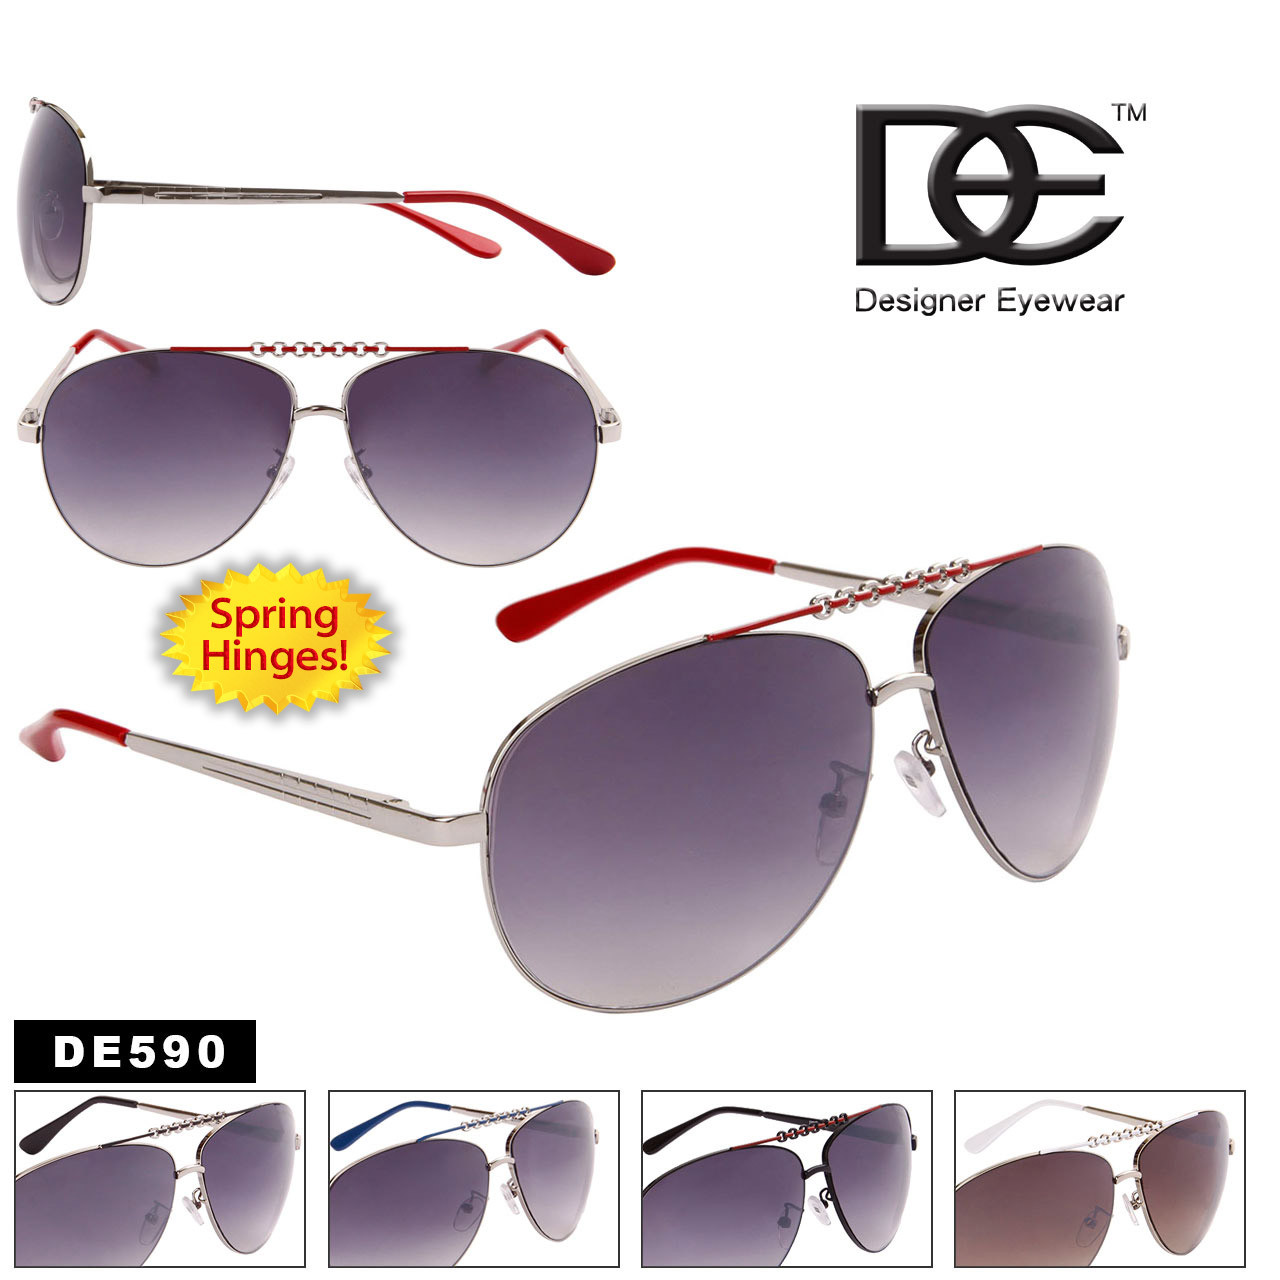 Metal Aviator Sunglasses DE590 Spring Hinge